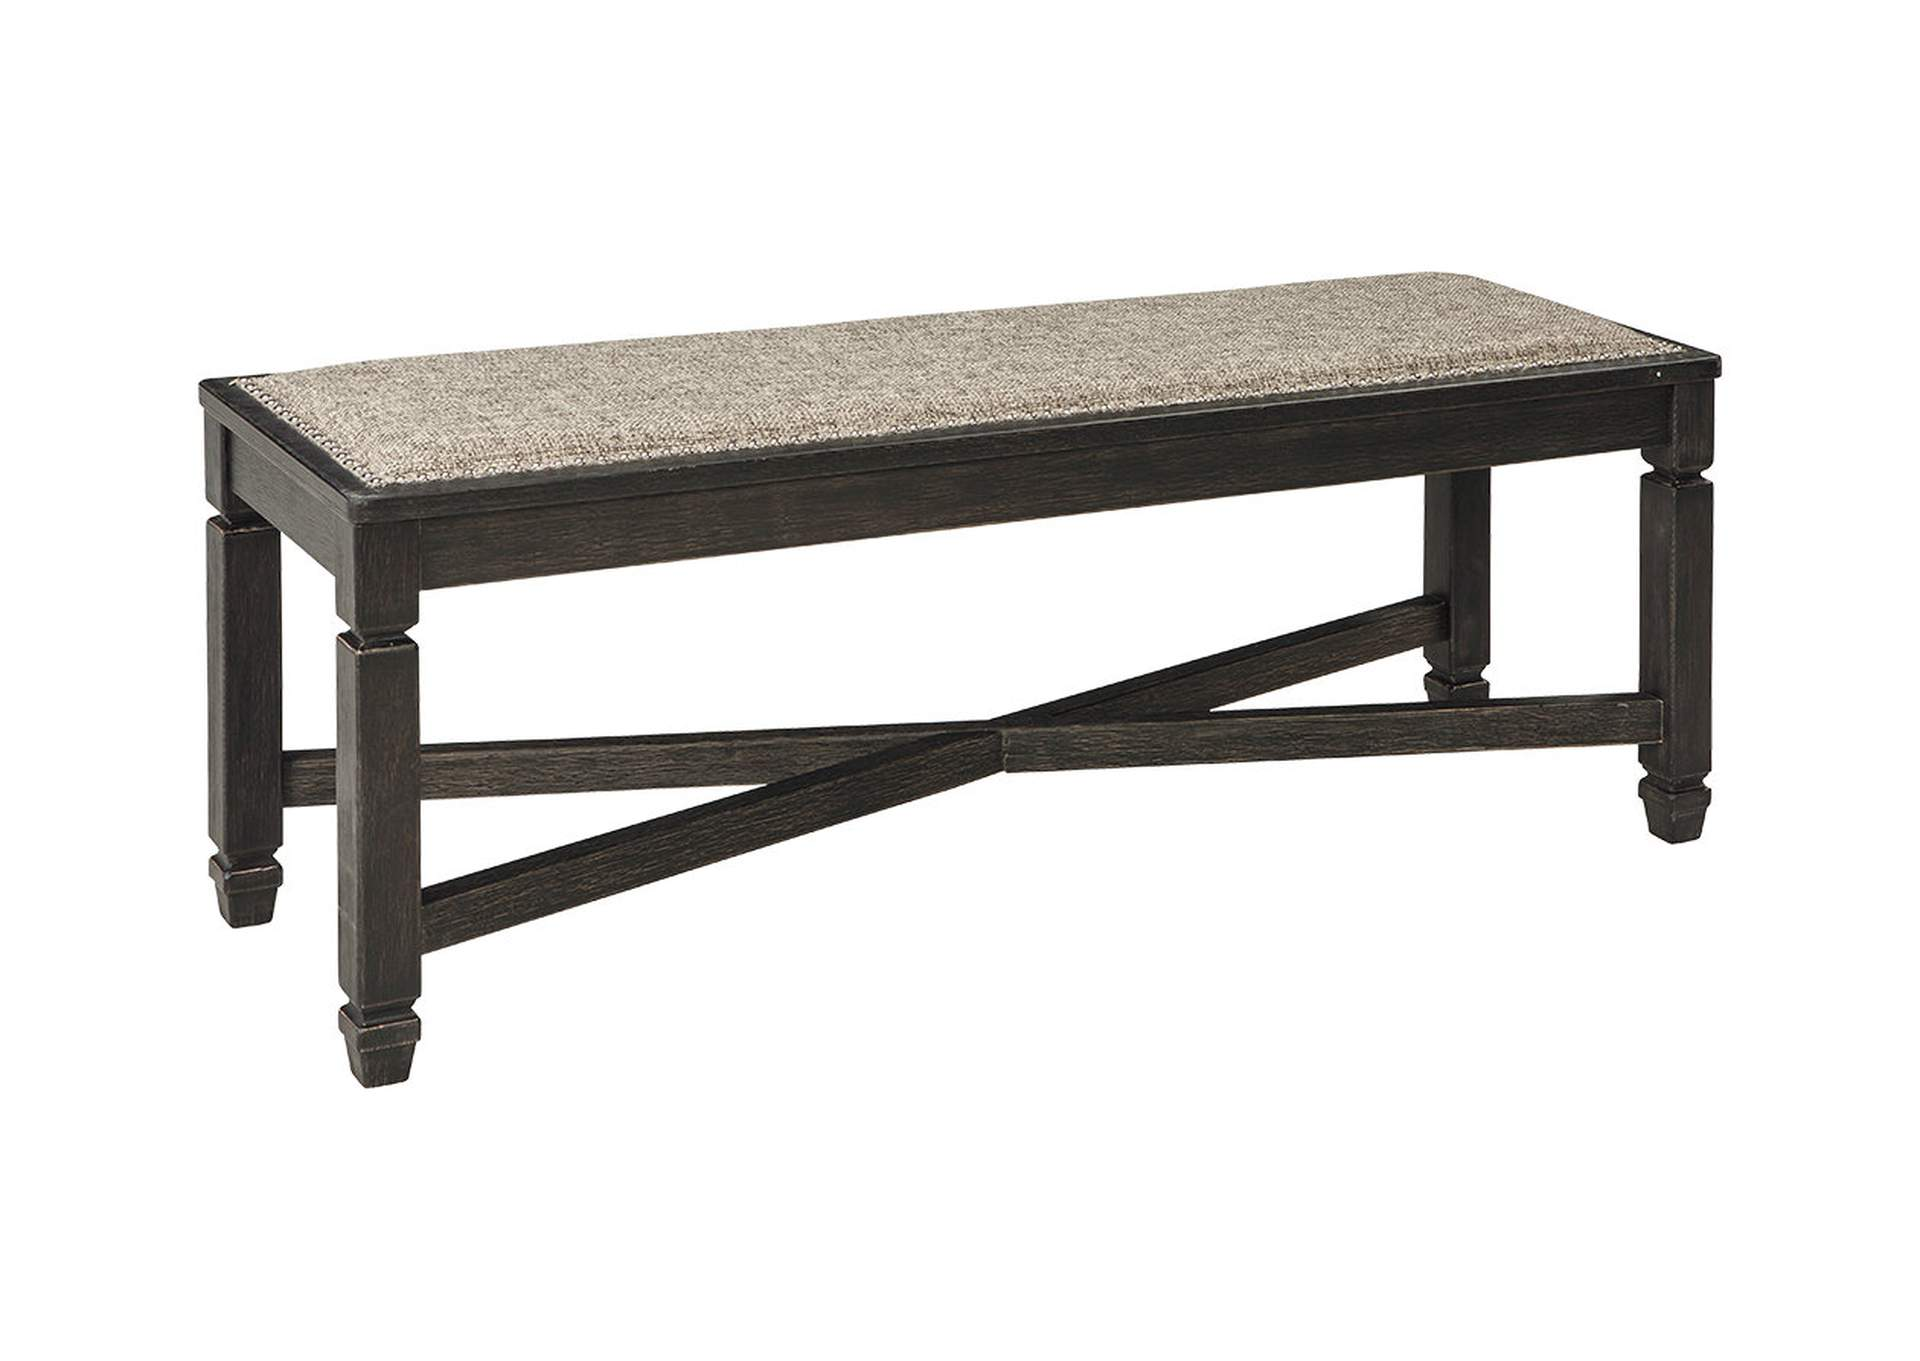 Tyler Creek Black/Grayish Brown Upholstered Dining Bench,Direct To Consumer Express